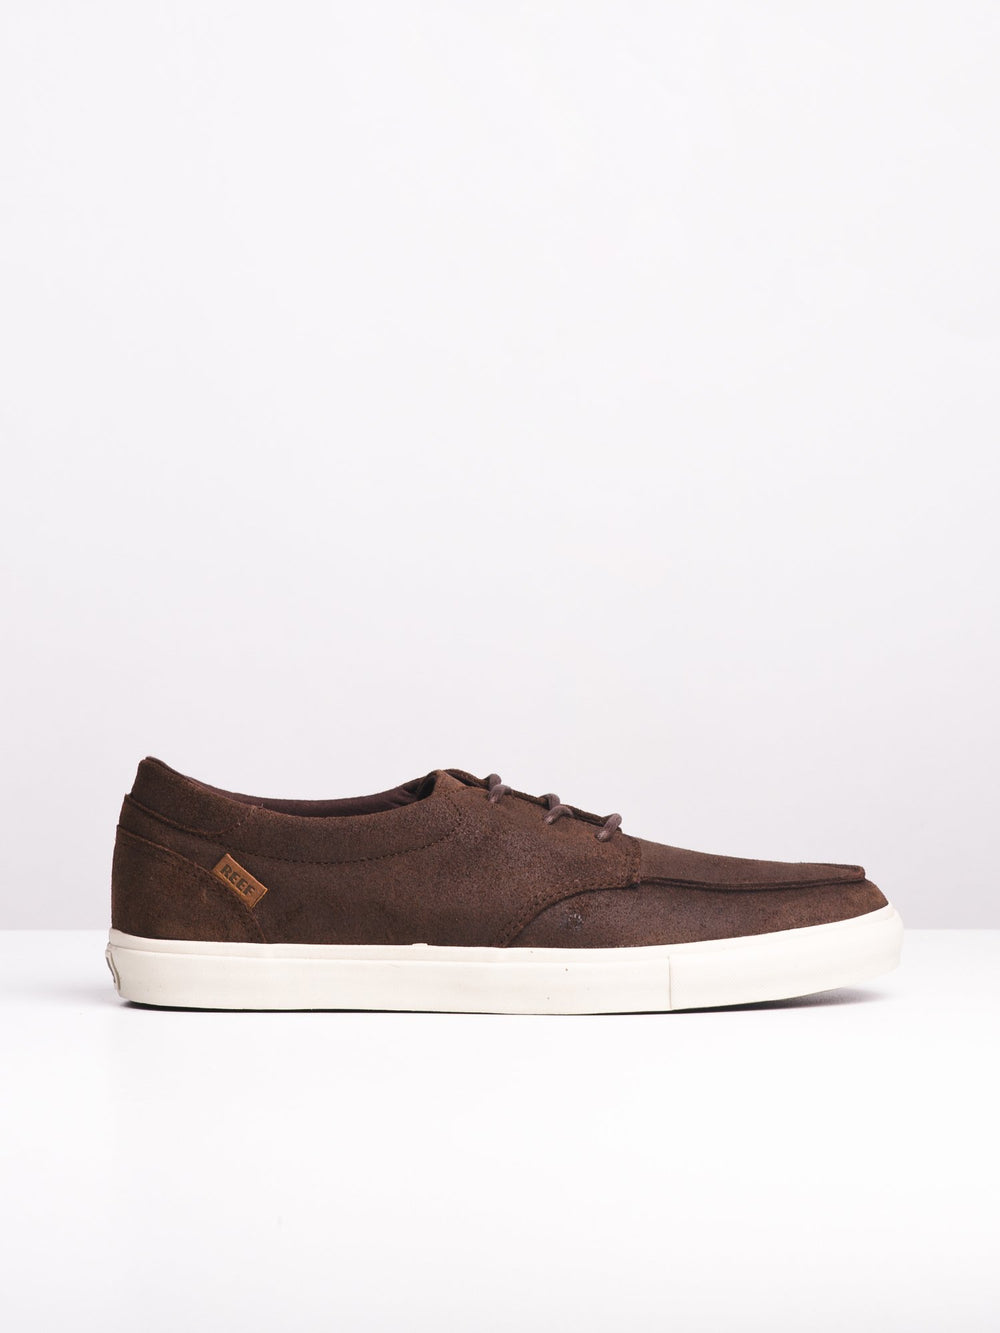 MENS REEF DECKHAND 3 LE - CHOCO - CLEARANCE